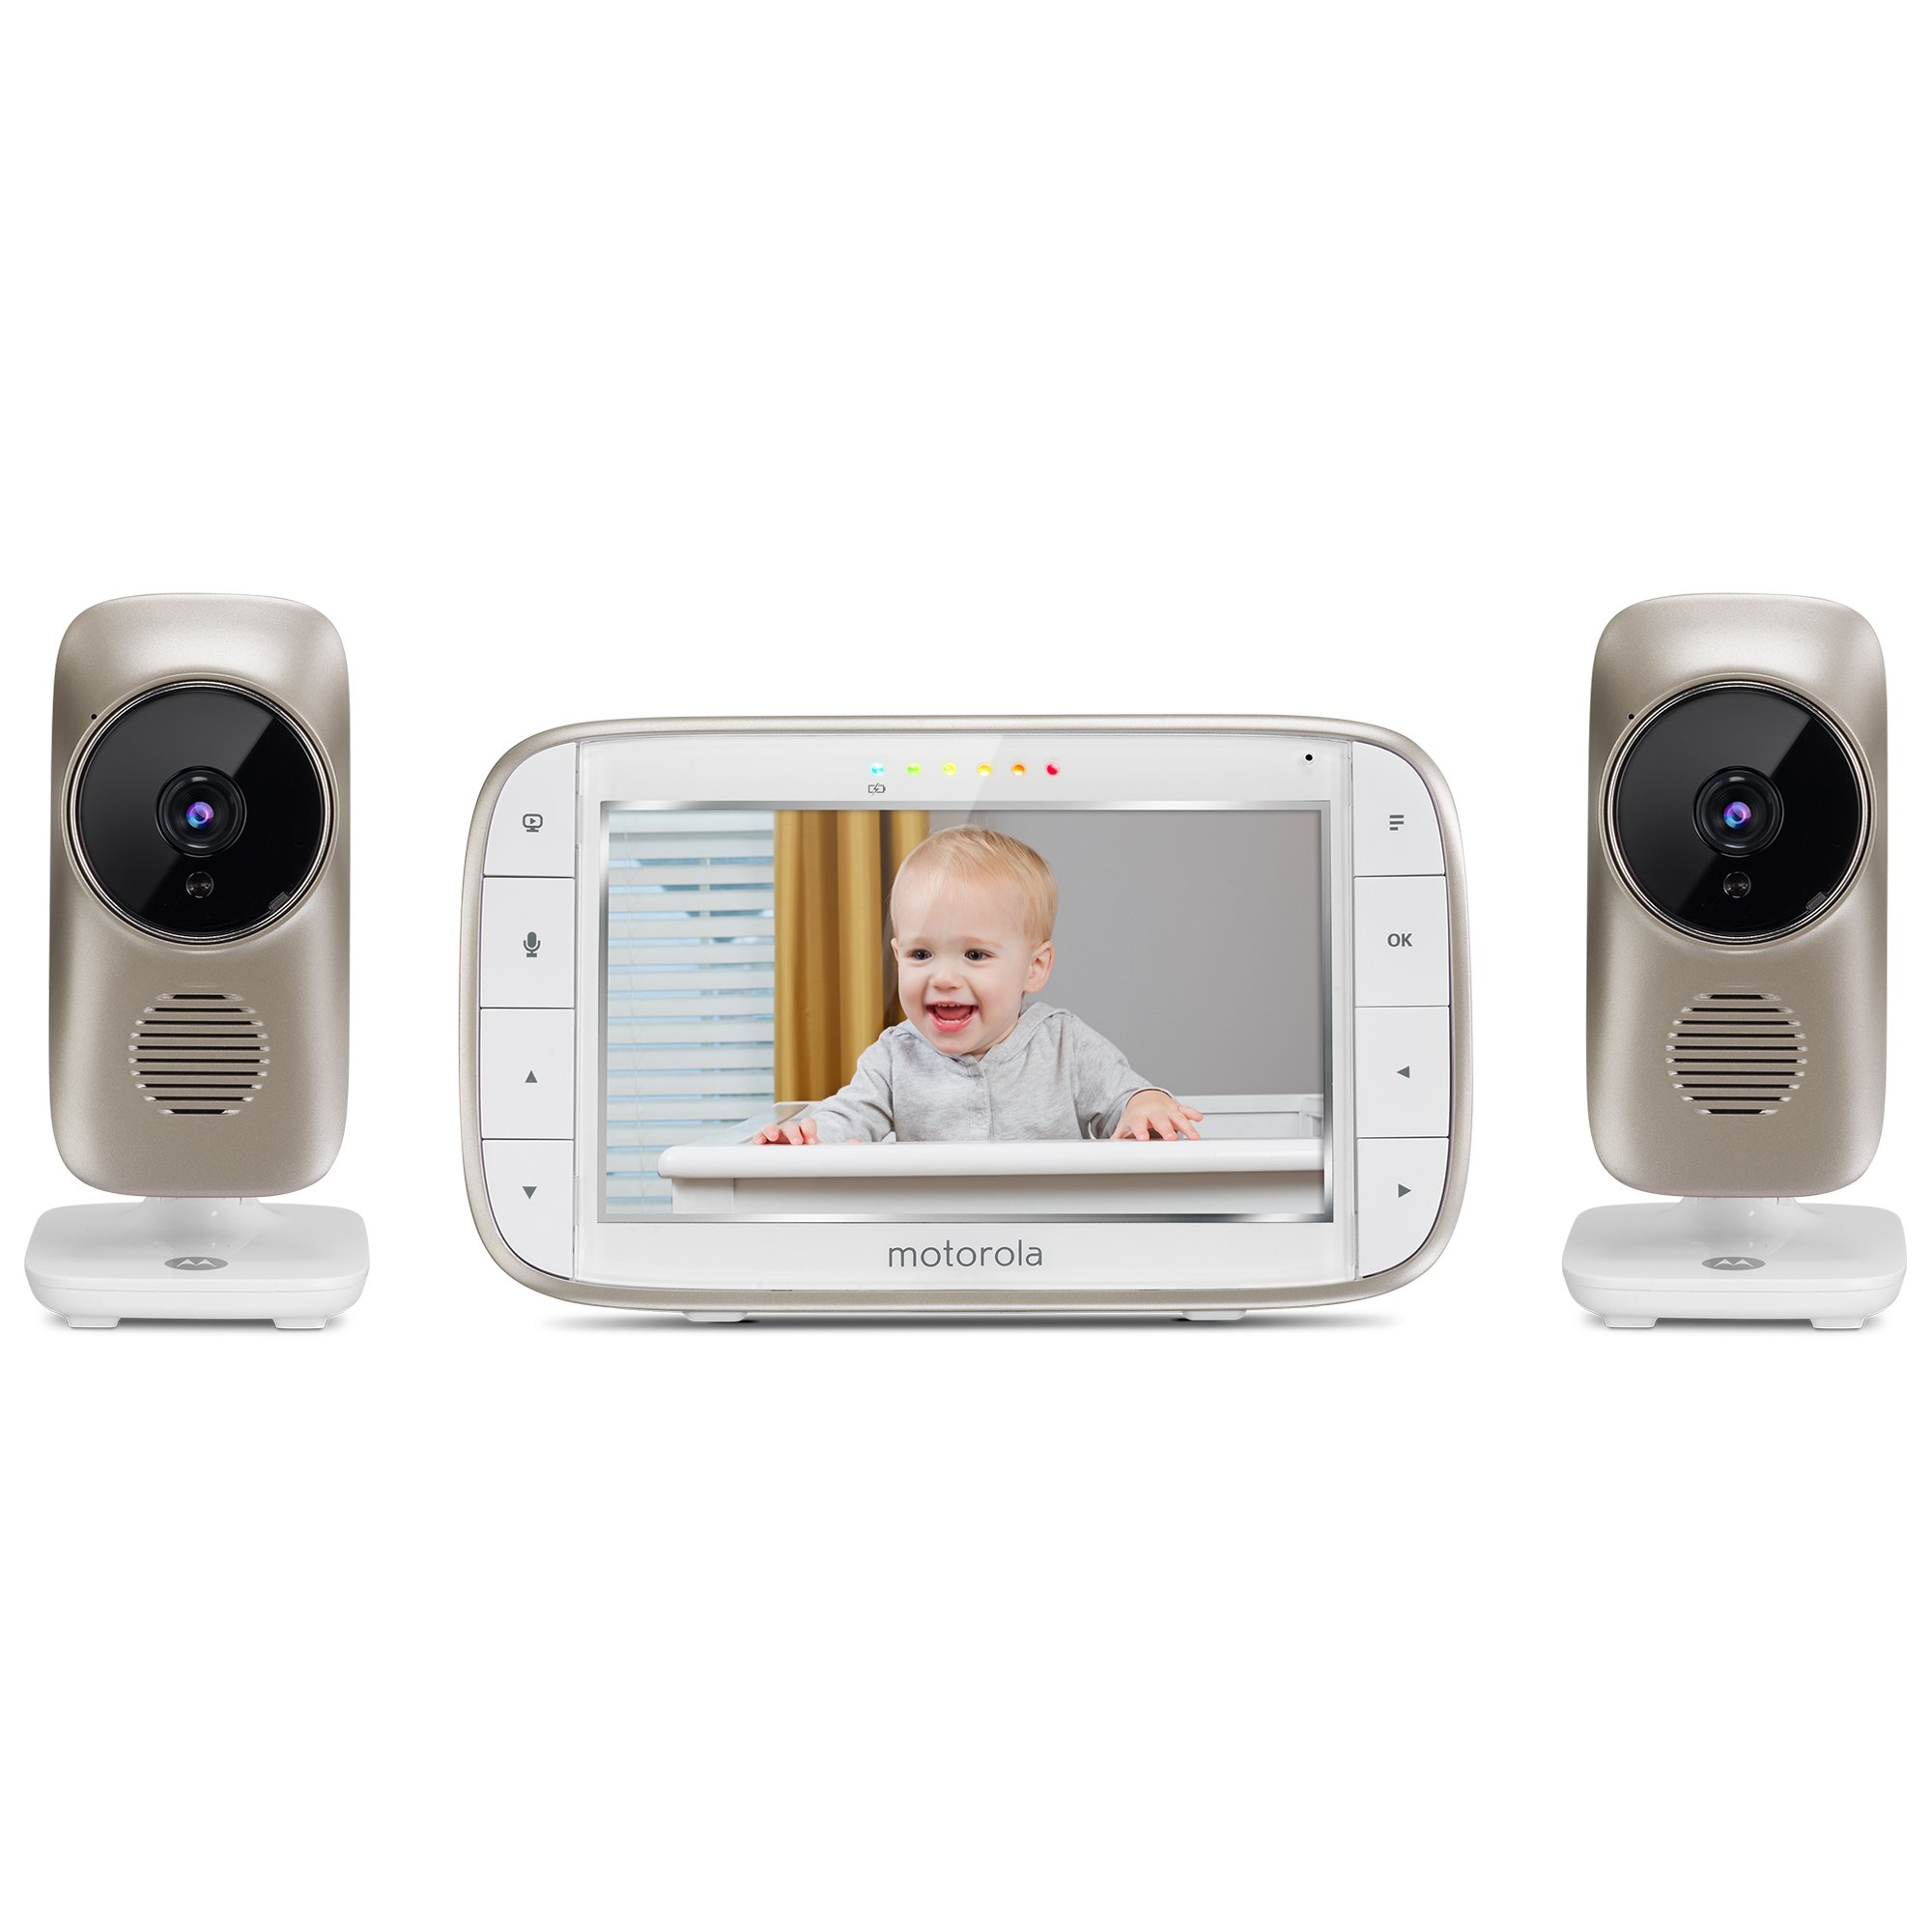 Motorola MBP845CONNECT-2 5'' Video Baby Monitor with Wi-Fi Viewing, 2 Cameras, Digital Zoom, Two-Way Audio, and Room Temperature Display